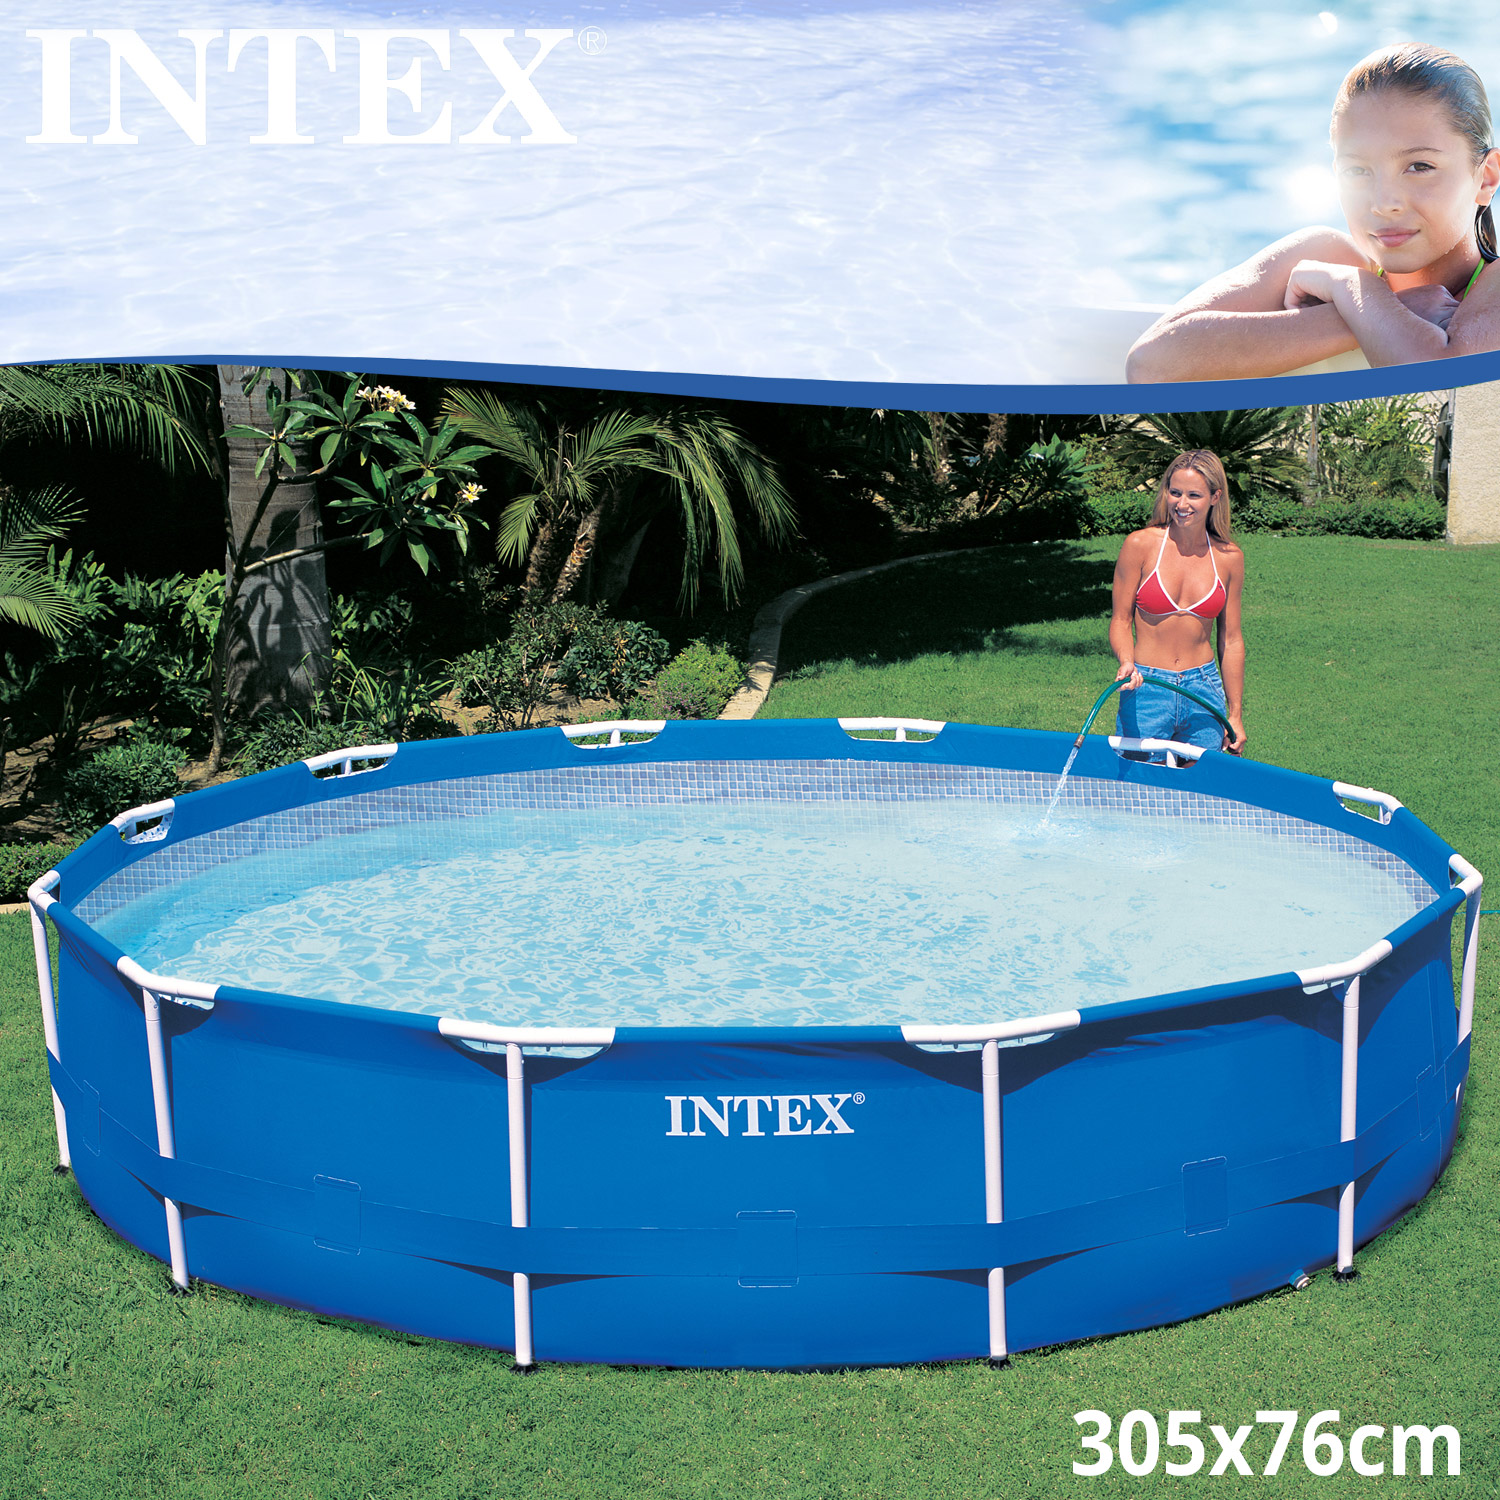 intex frame stahlrohrbecken swimming pool schwimmbad schwimmbecken planschbecken ebay. Black Bedroom Furniture Sets. Home Design Ideas